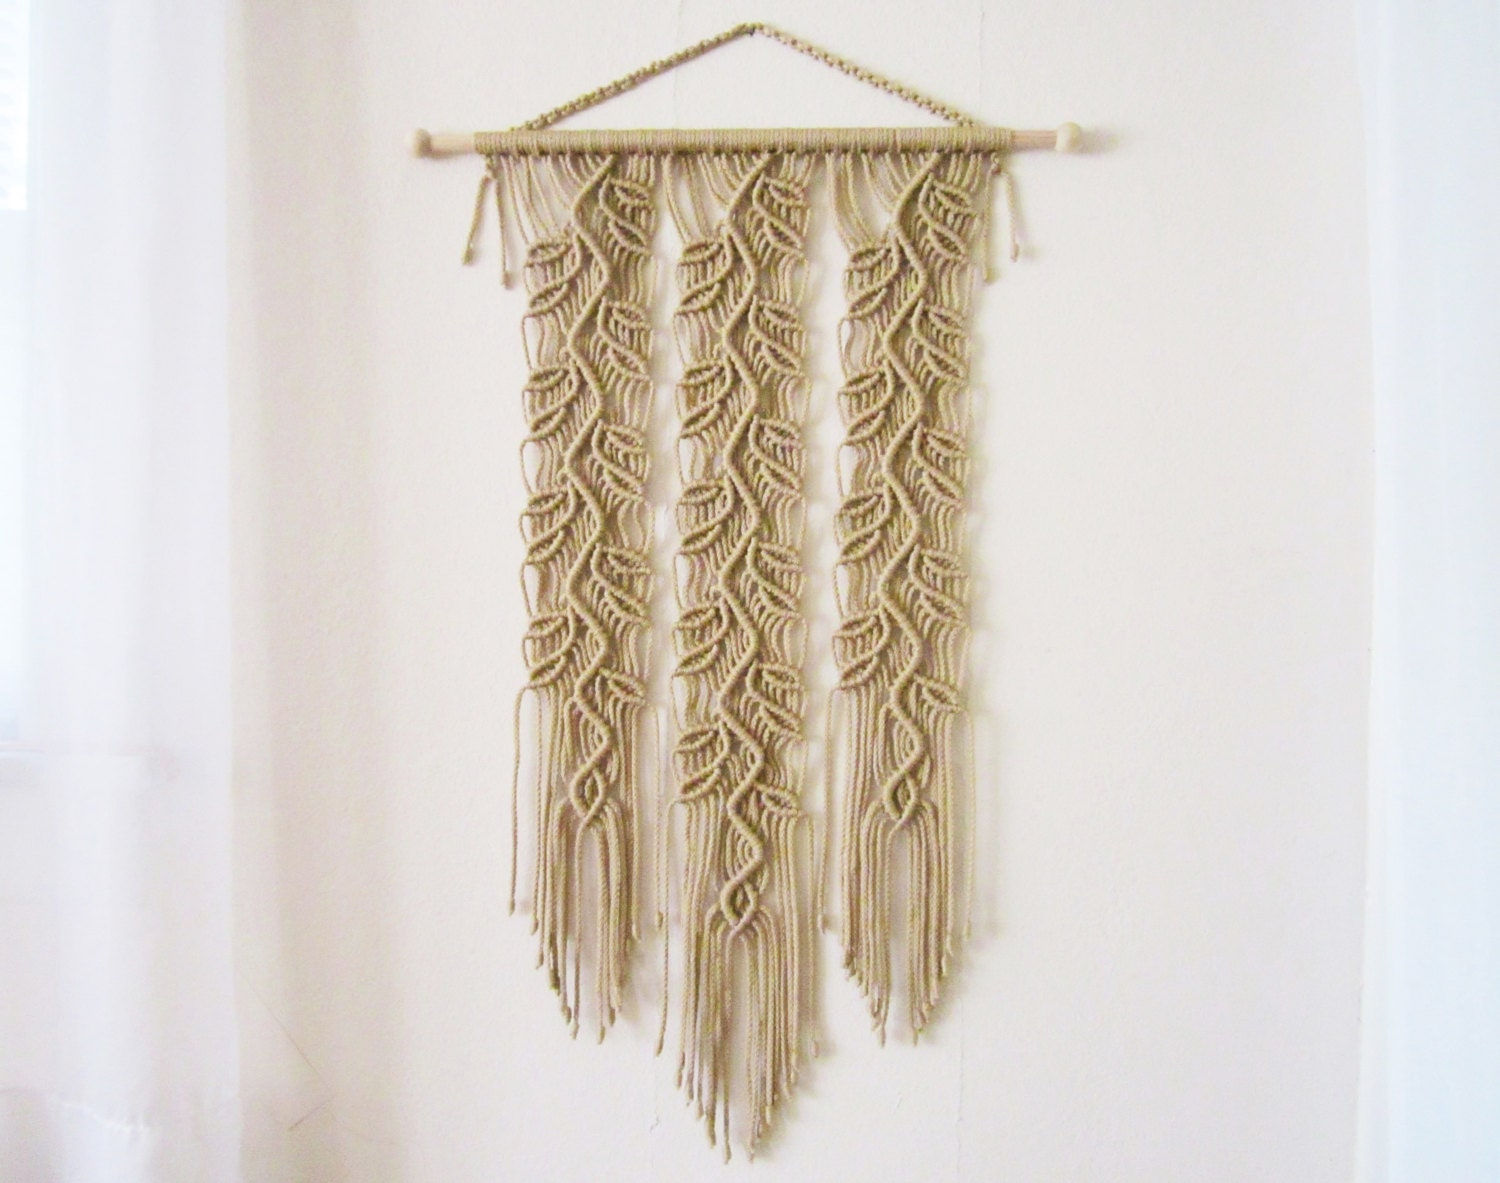 Macrame wall hanging sprigs 4 handmade macrame home decor for Home made decorative items